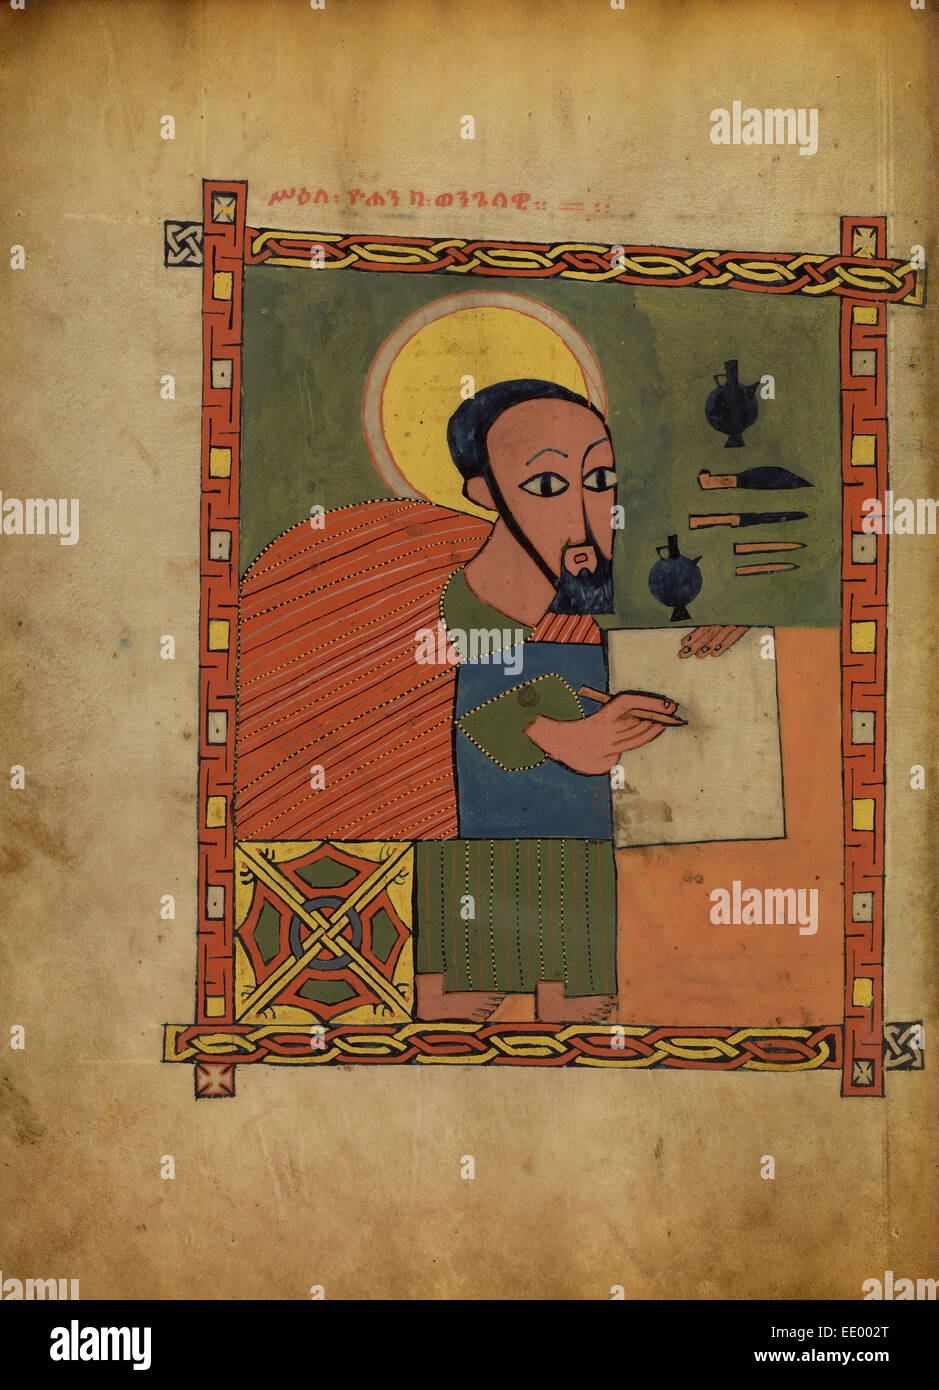 Saint John; Unknown; Ethiopia, Africa; about 1480 - 1520; Tempera on parchment - Stock Image